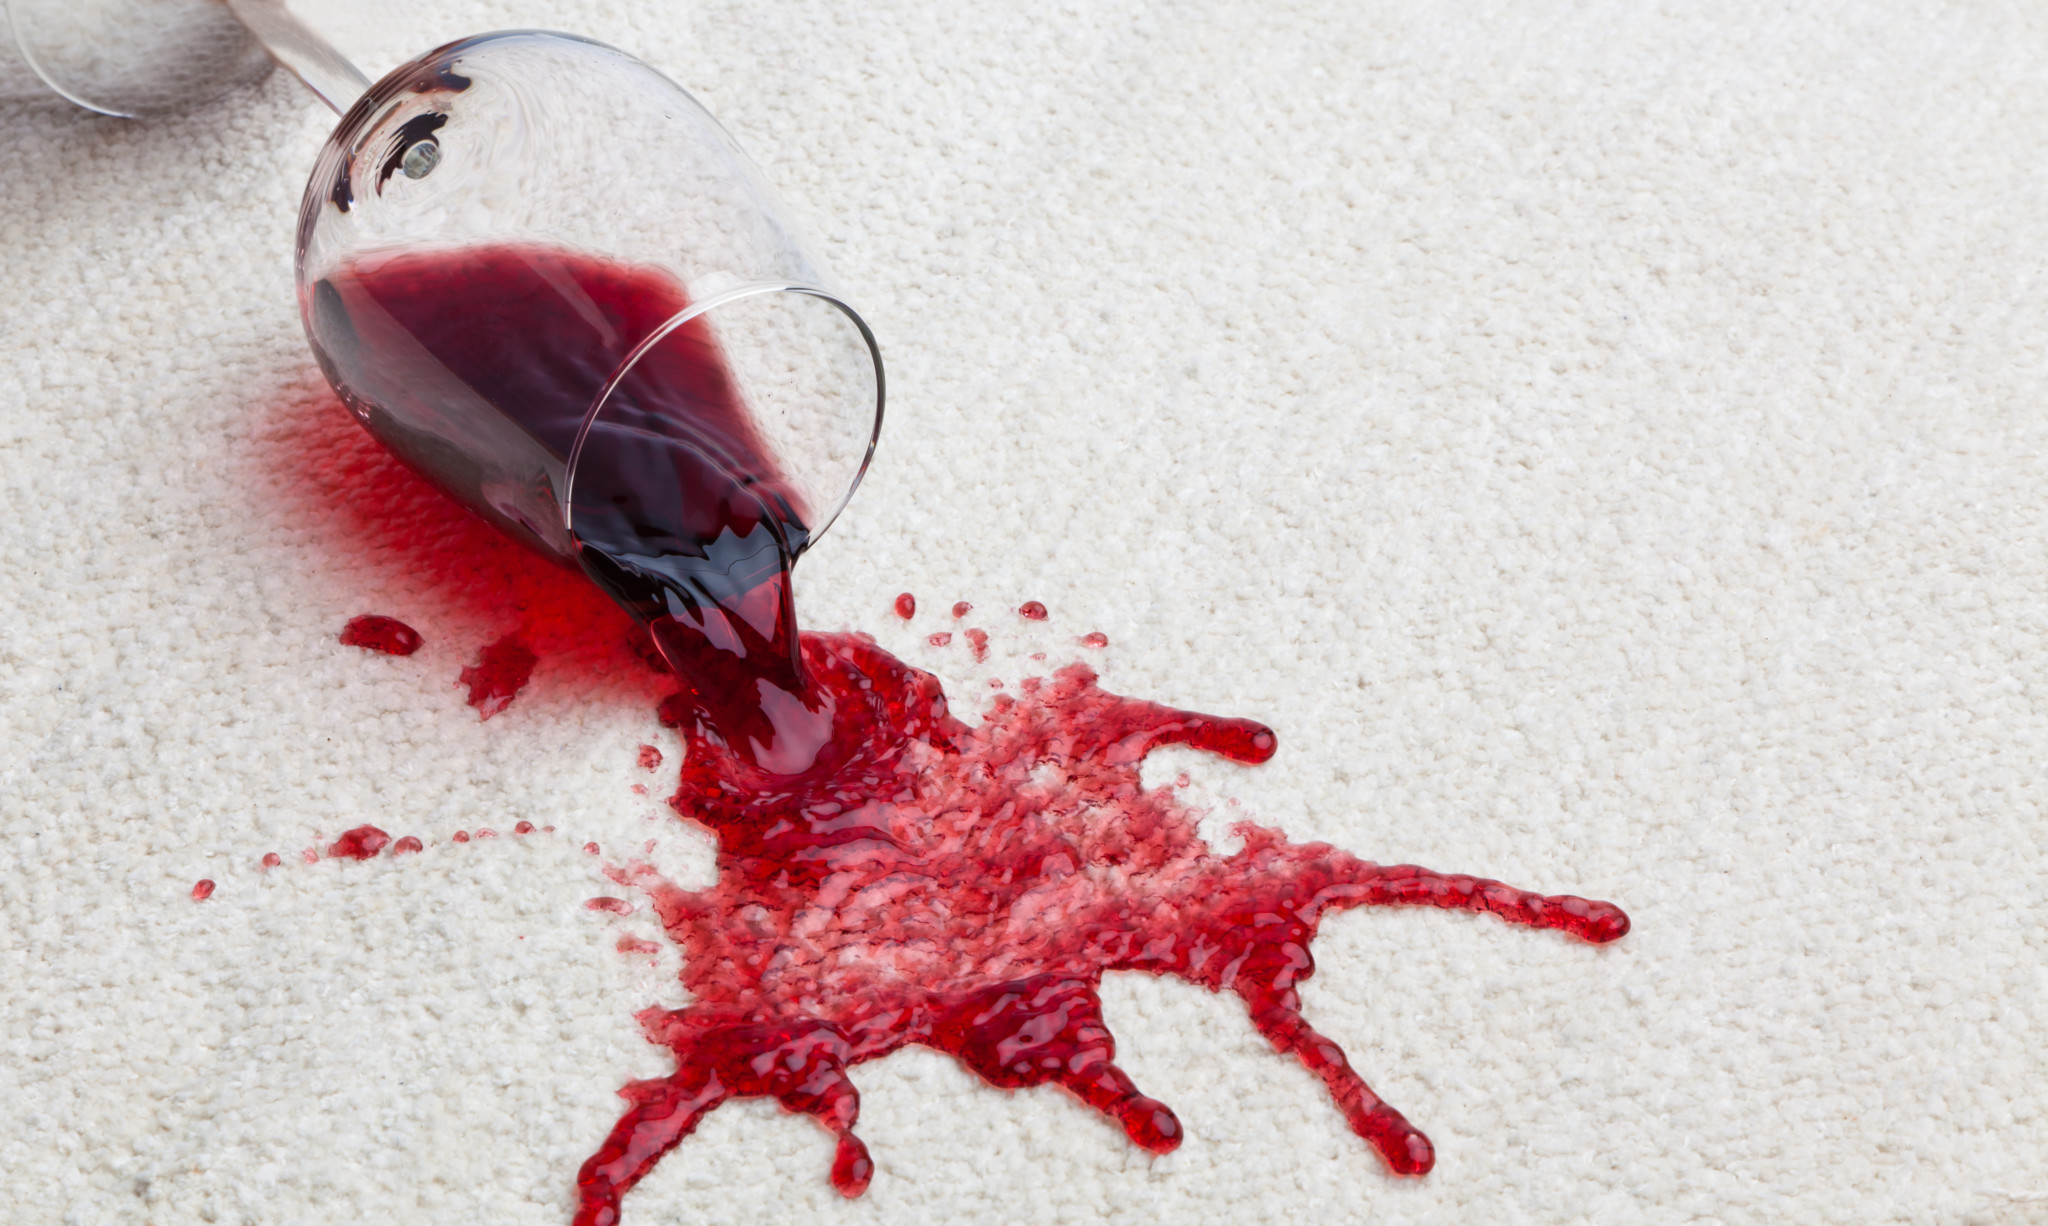 Red wine spilled on the carpet that needs to be cleaned before it leaves a stain.